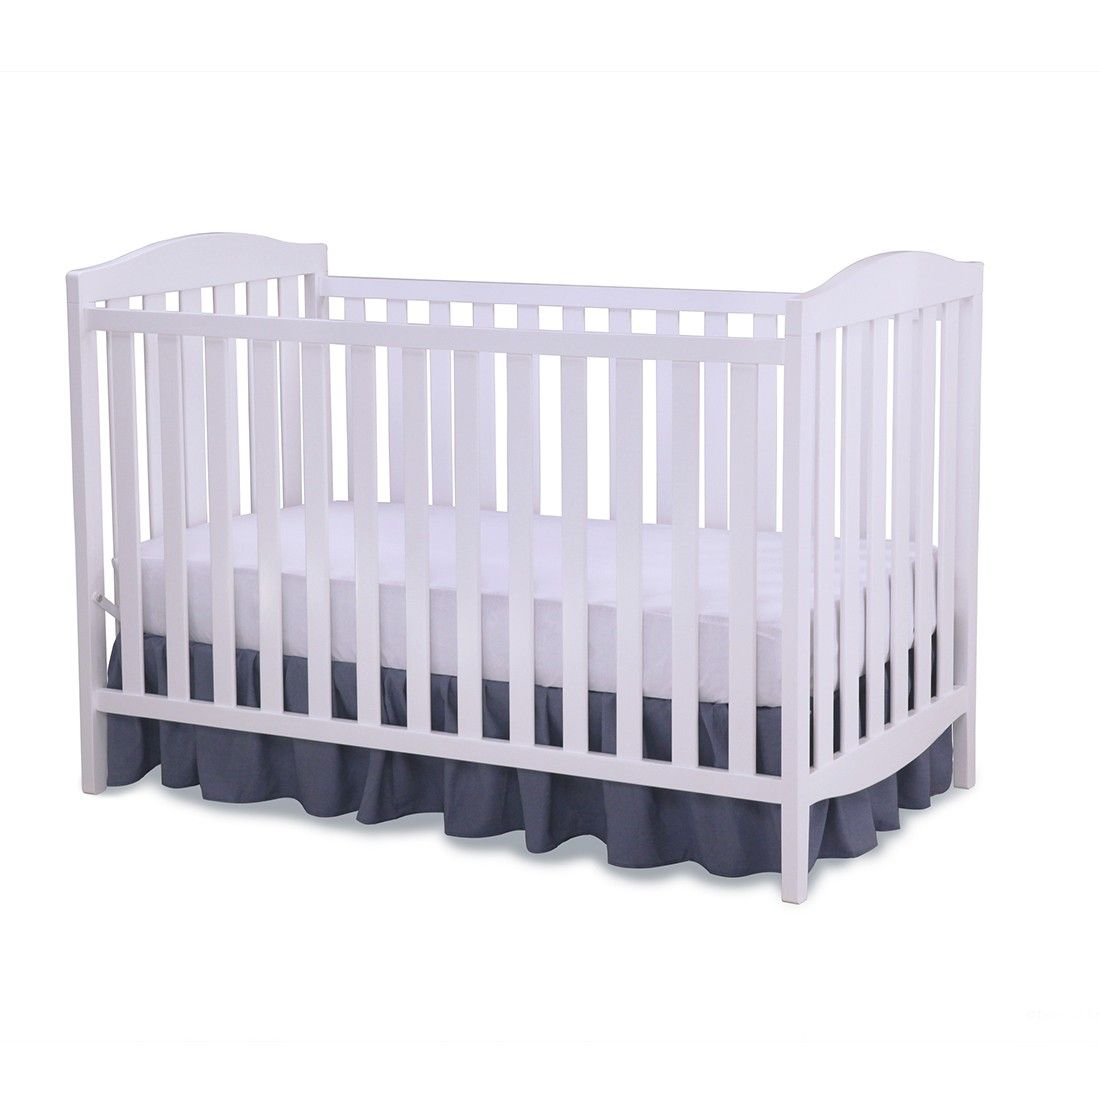 Compra Delta Children Cuna Capri Crib Color Blanco por solo B ...